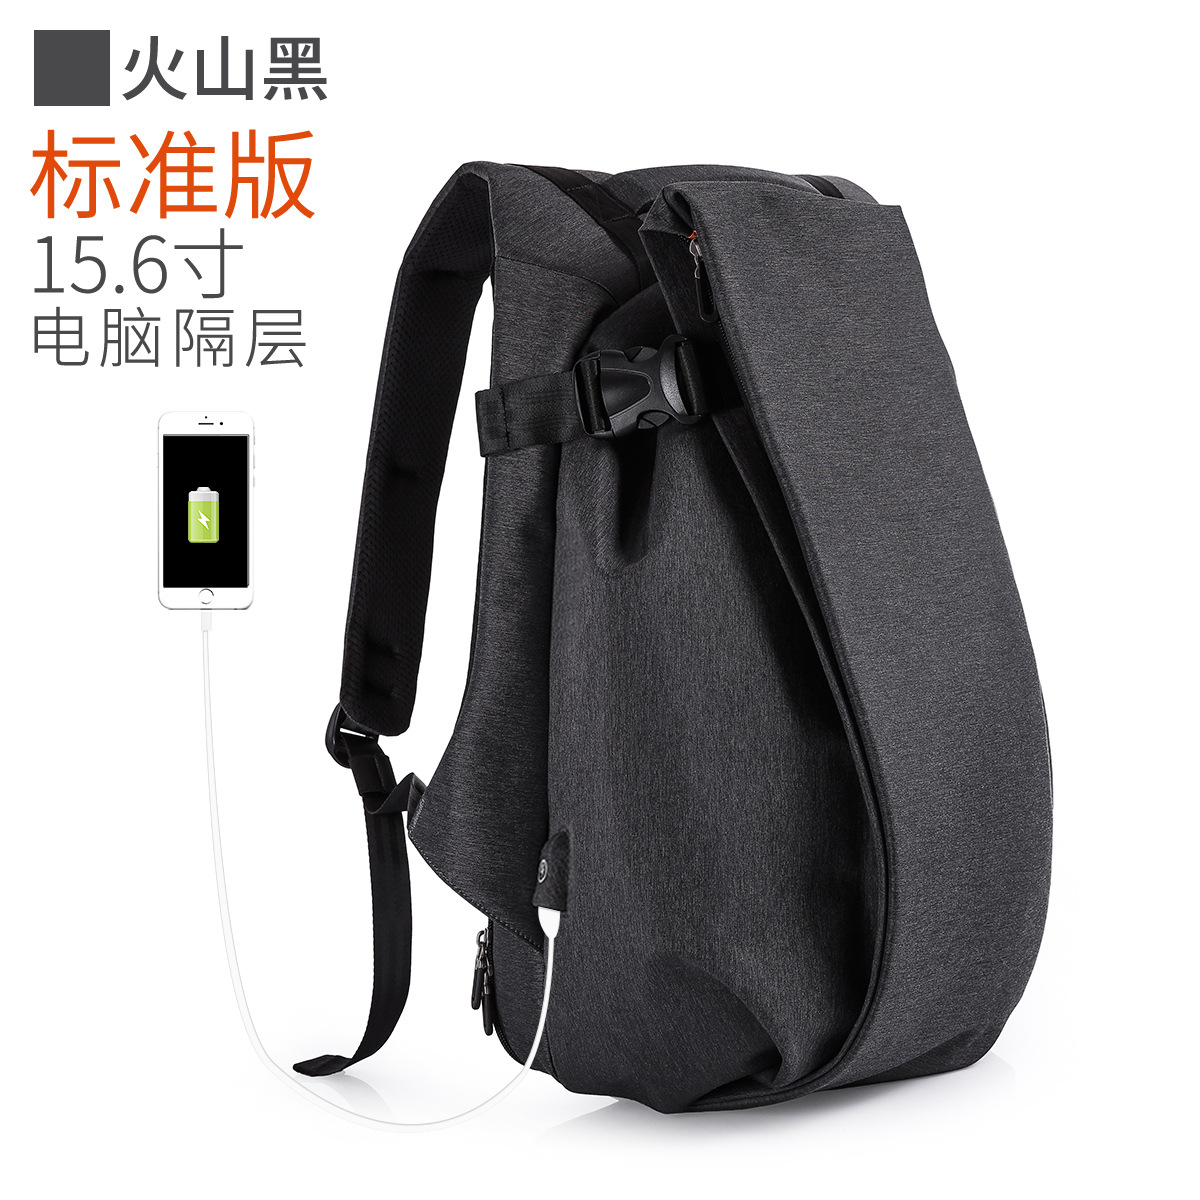 Ready-To-Use Multi-Purpose Computer Backpack for Overnights